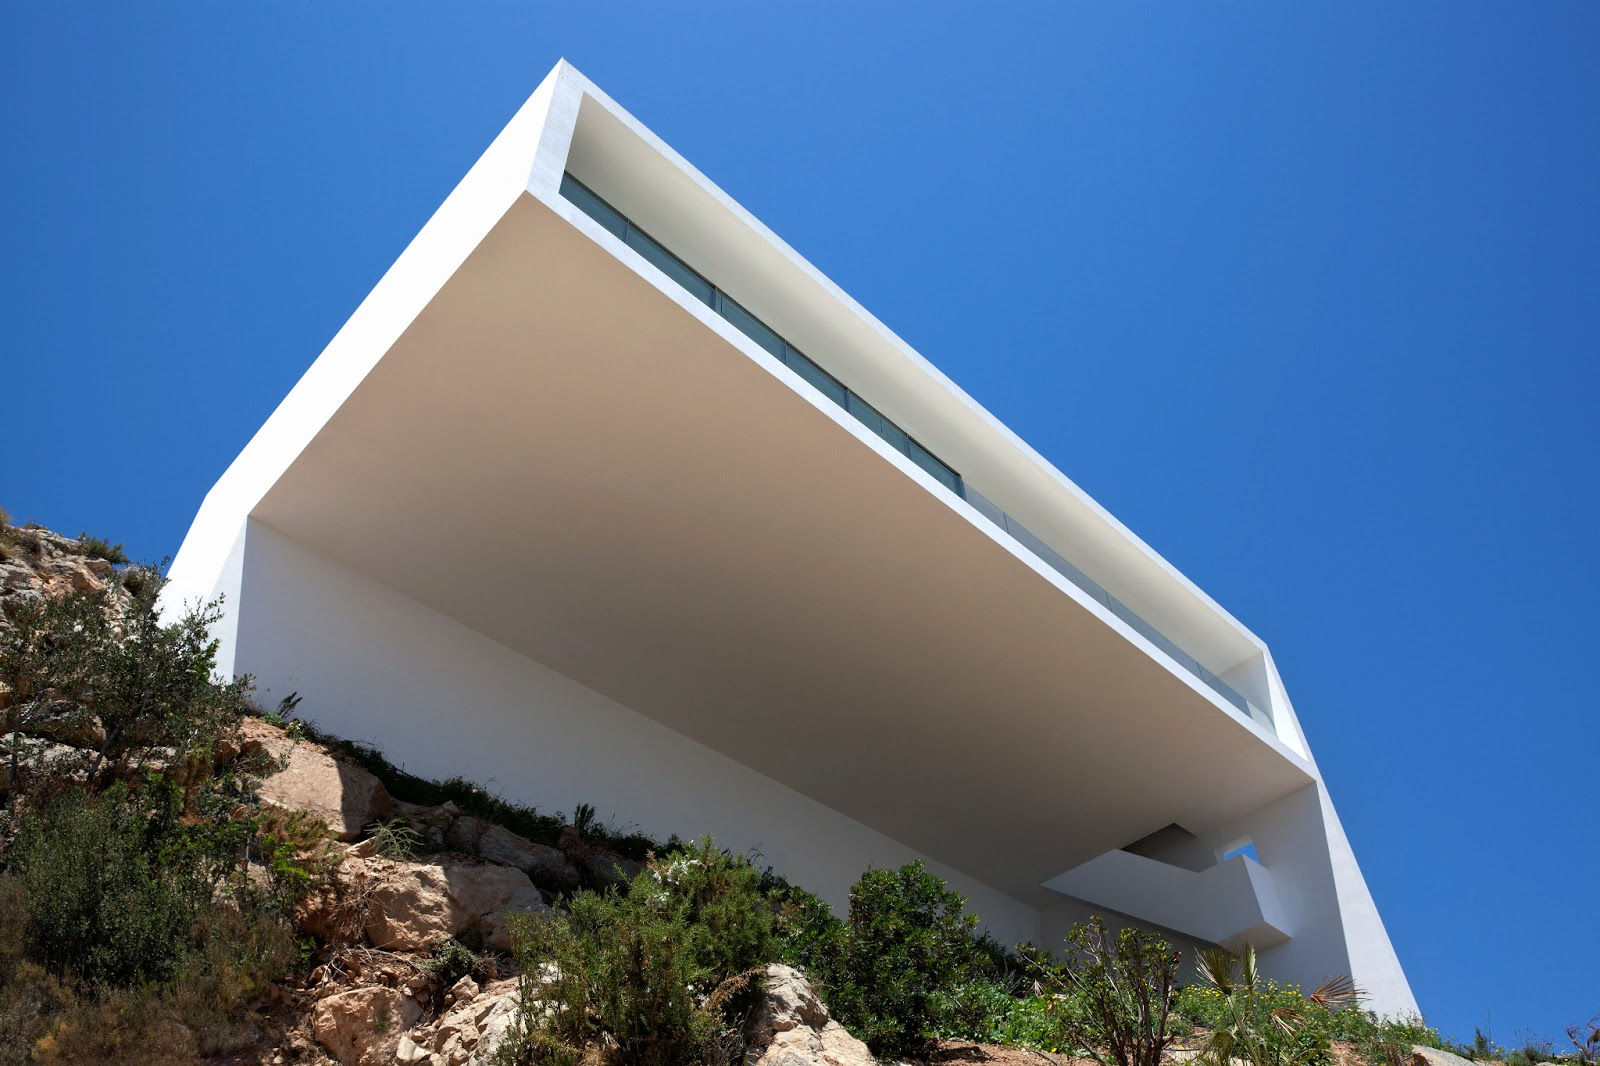 Void matters projects wanted house on the cliff by - Fran silvestre arquitectos ...